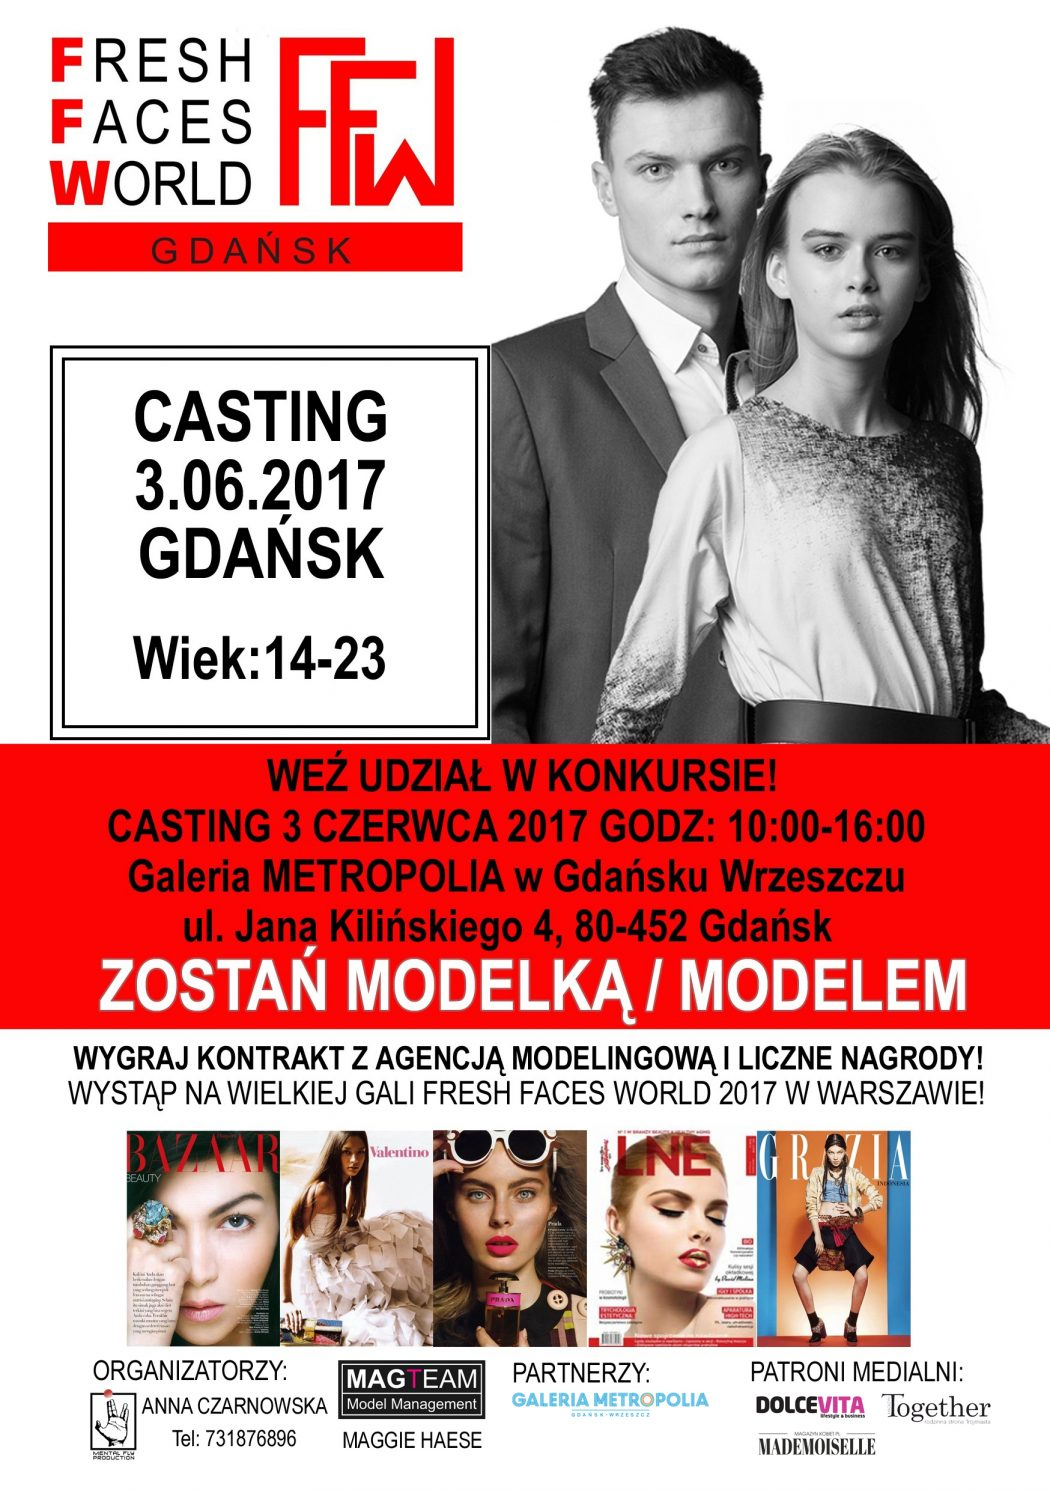 magazynkobiet.pl - ulotka fresh faces World Gdansk 002 1050x1490 - FRESH FACES WORLD GDAŃSK